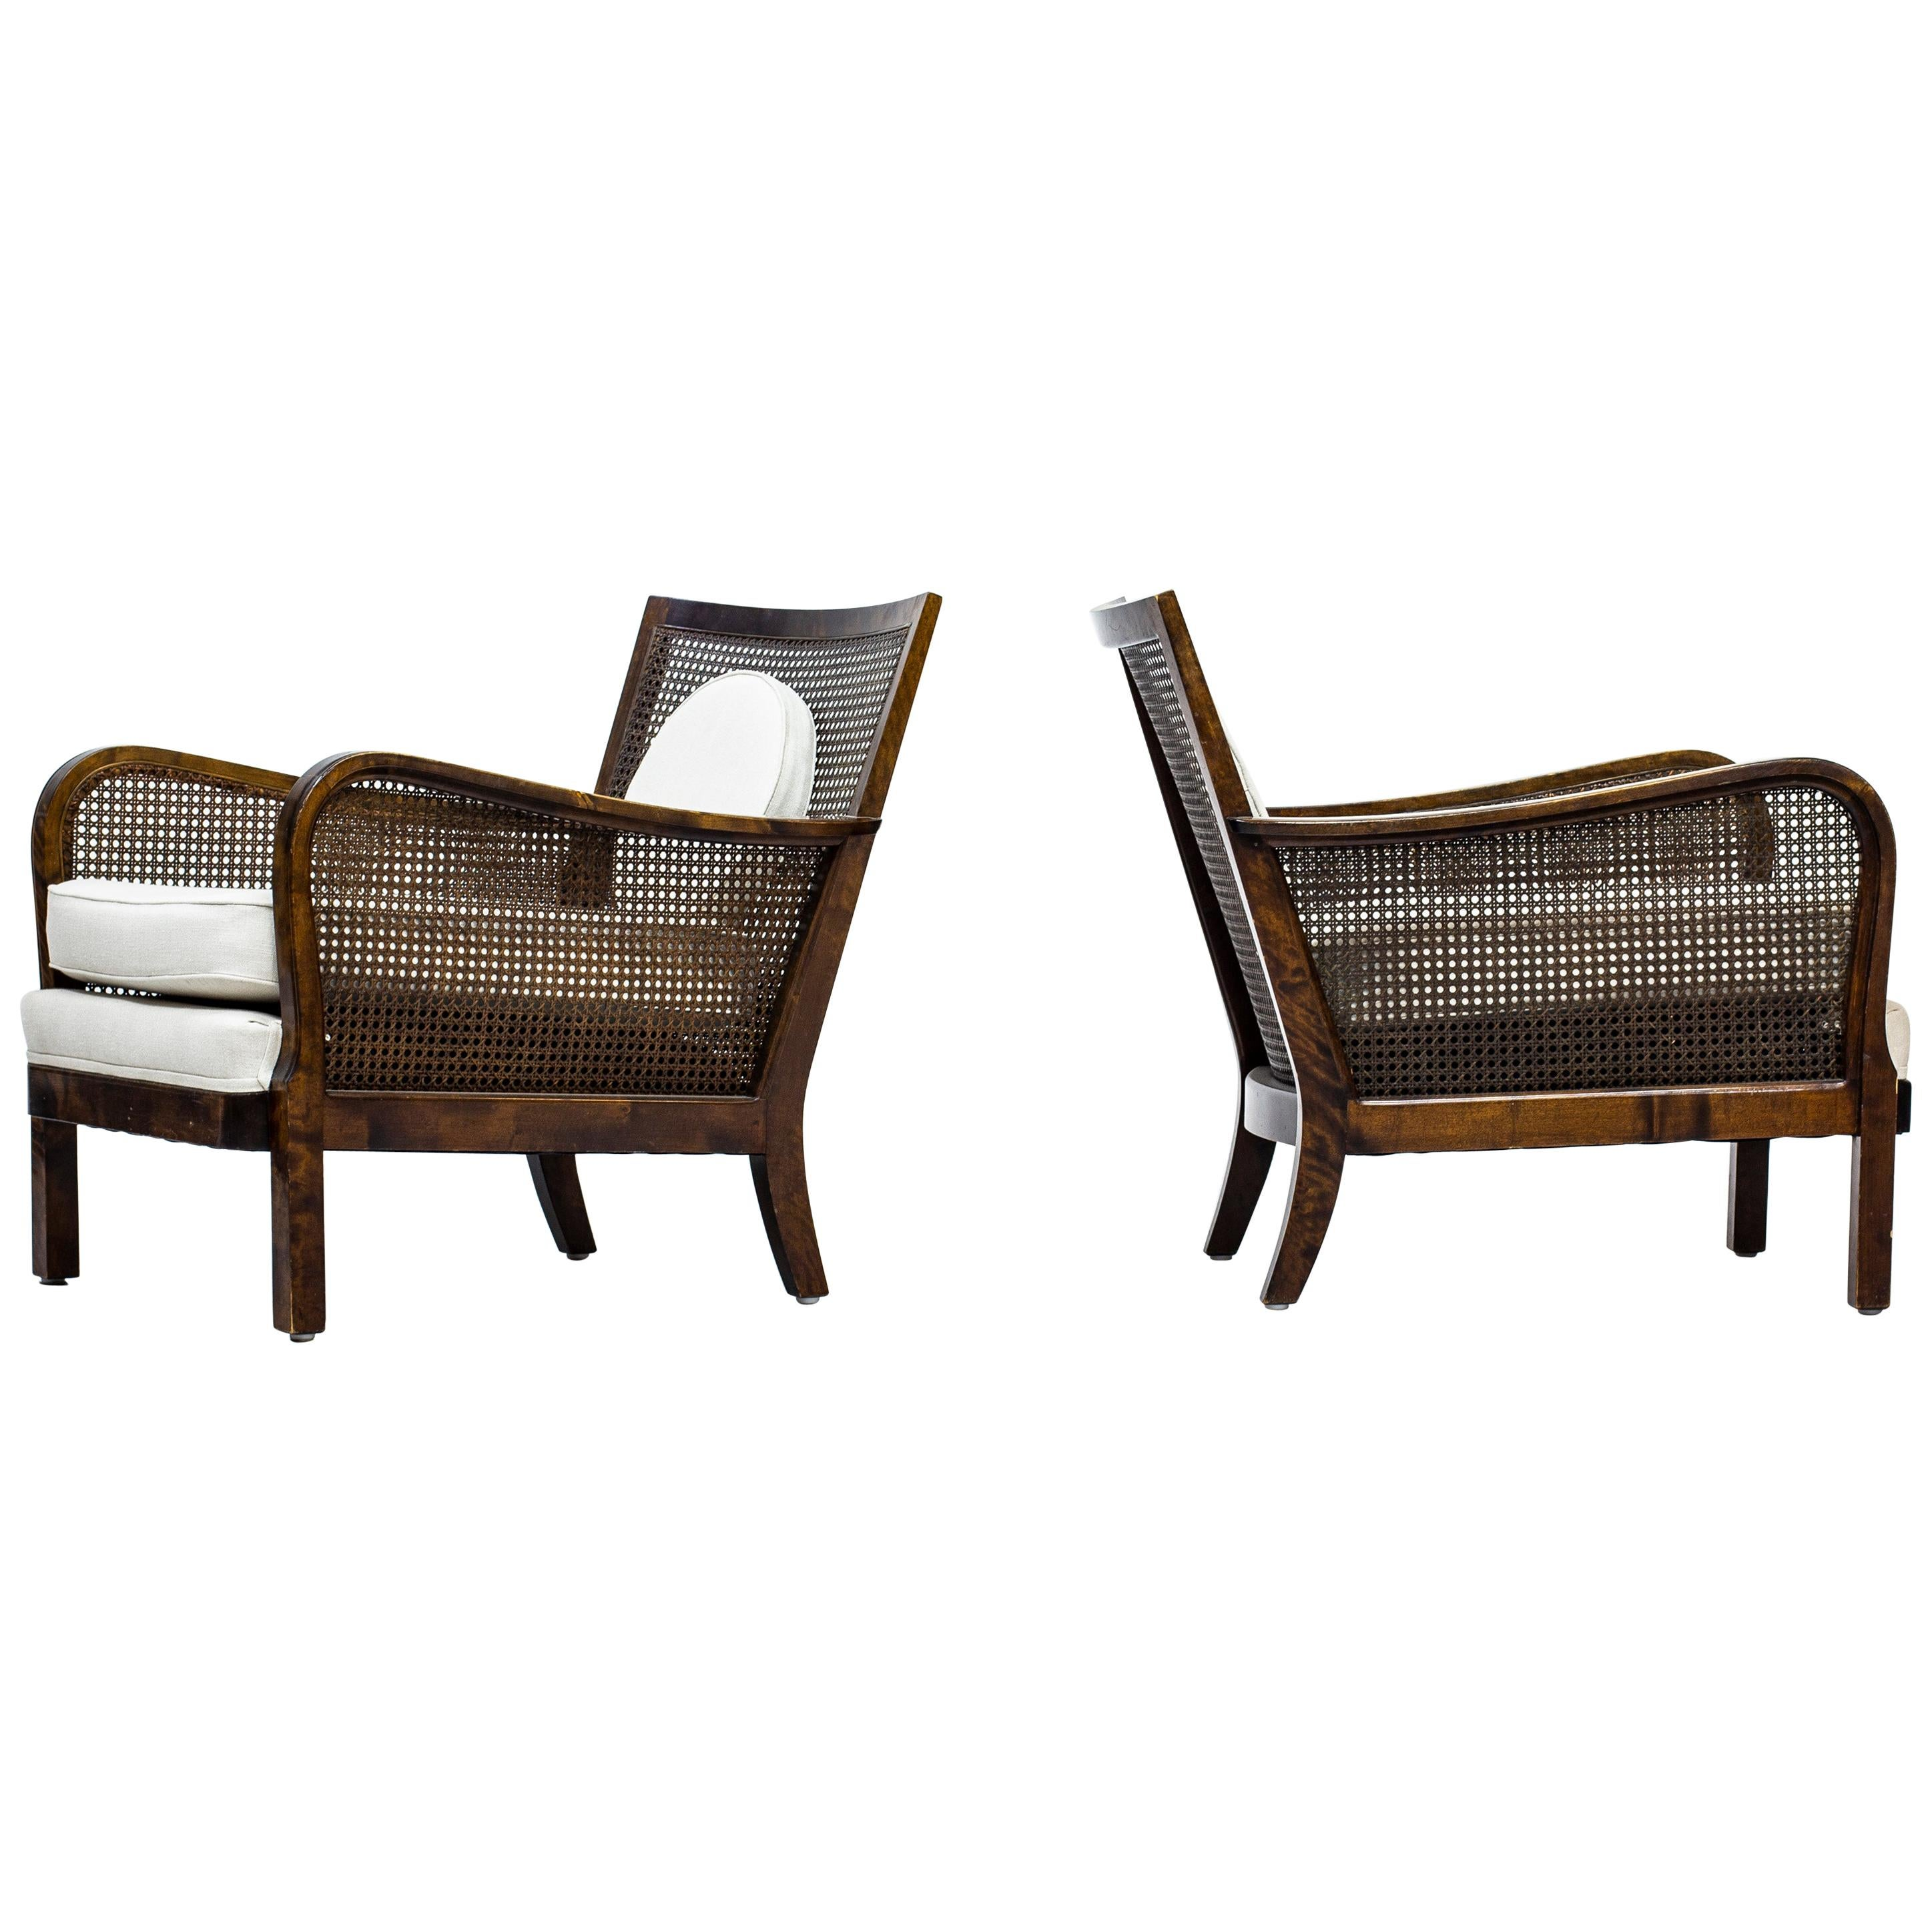 Swedish Grace Style Lounge Chairs Attributed to Otto Schulz and Boet